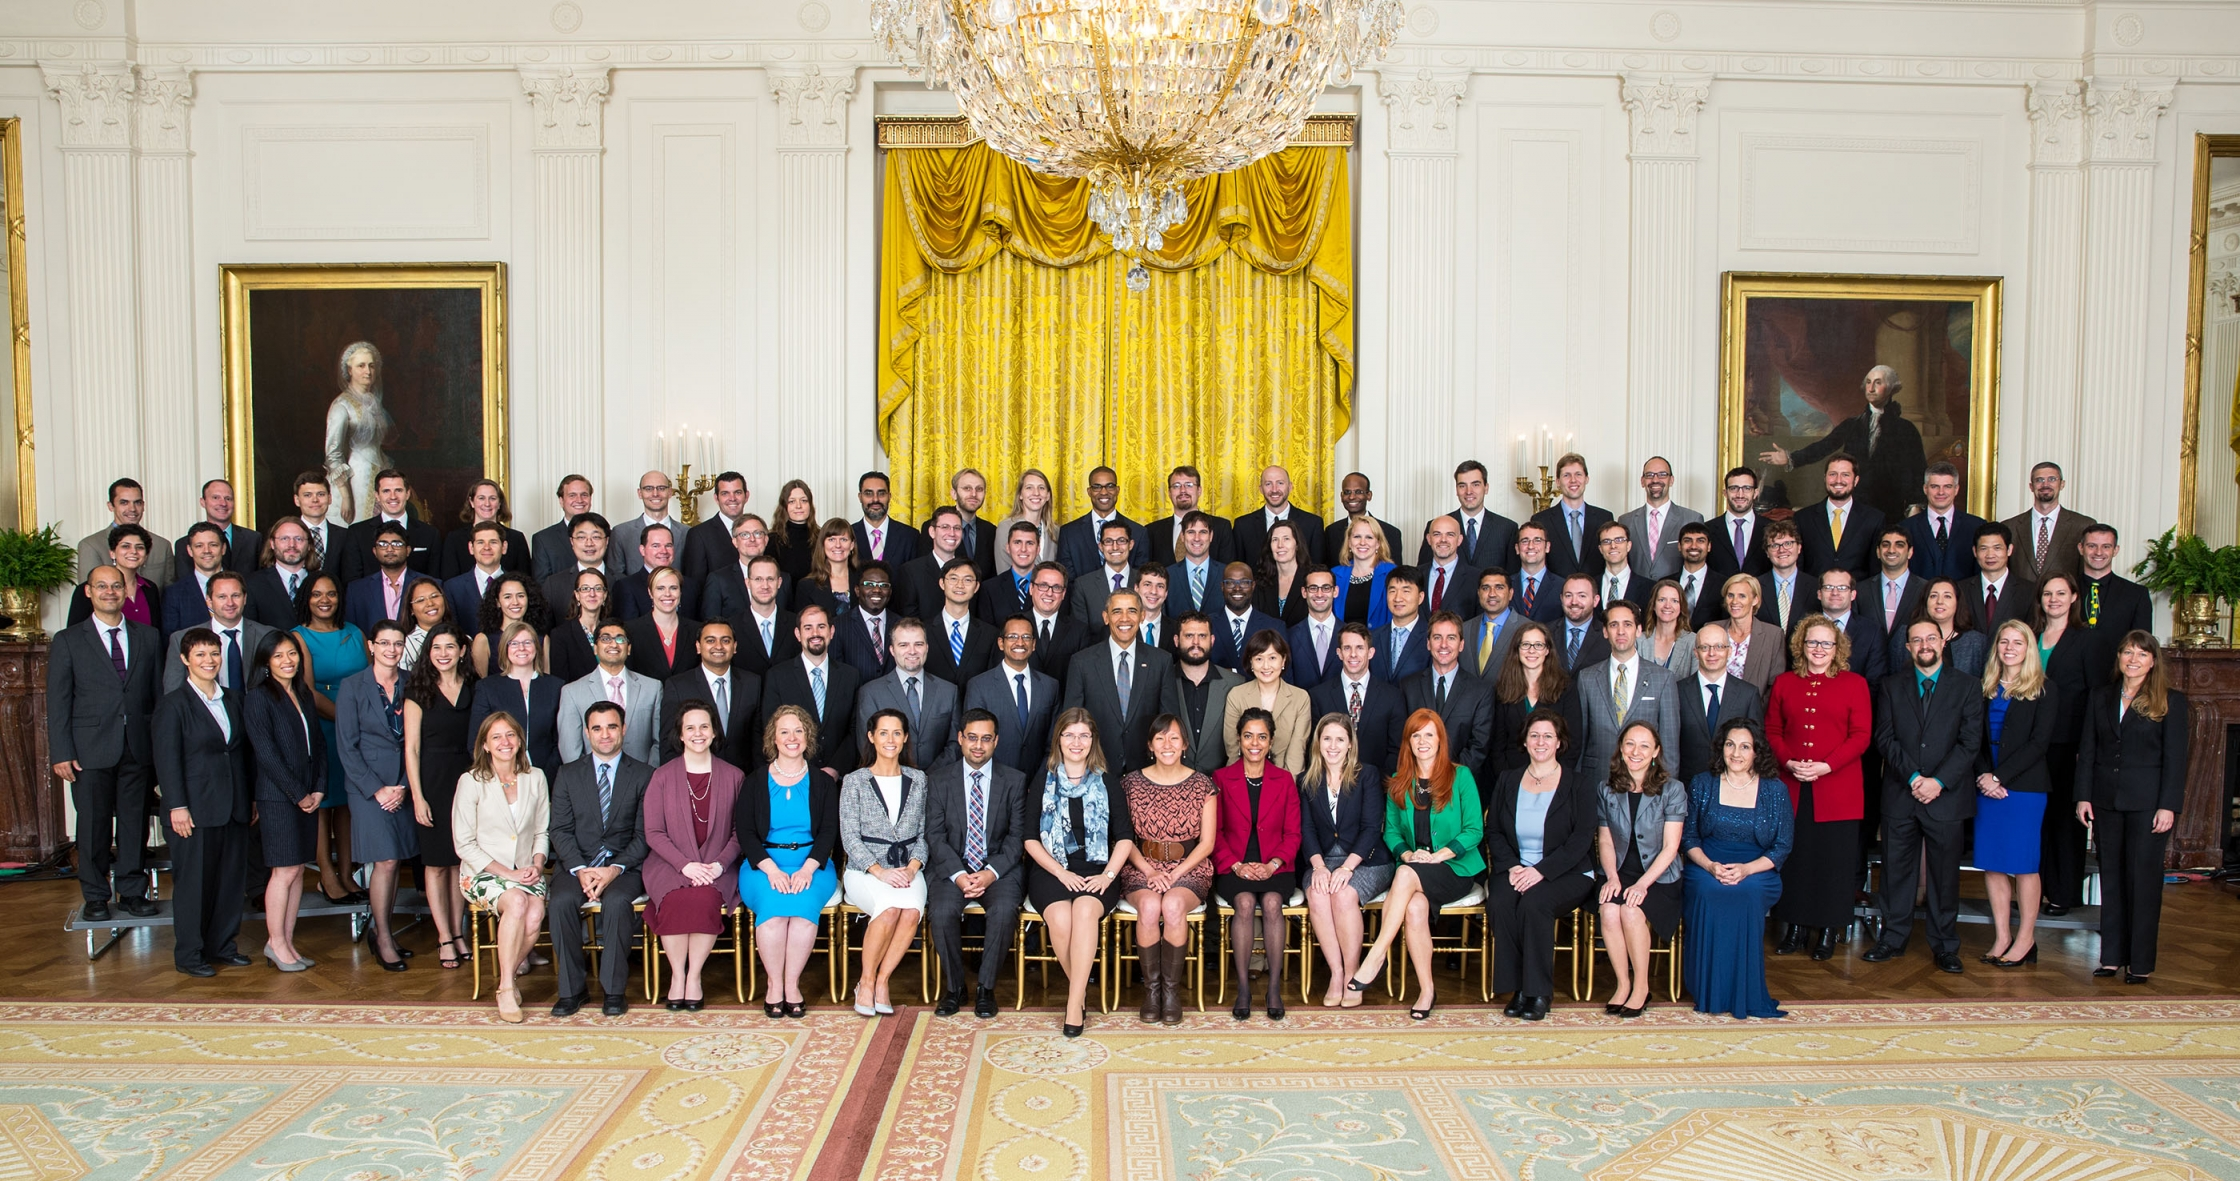 President Barack Obama joins recipients of the 2016 Presidential Early Career Award for Scientists and Engineers (PECASE) for a group photo in the East Room of the White House, May 5, 2016. (Official White House Photo by Lawrence Jackson)